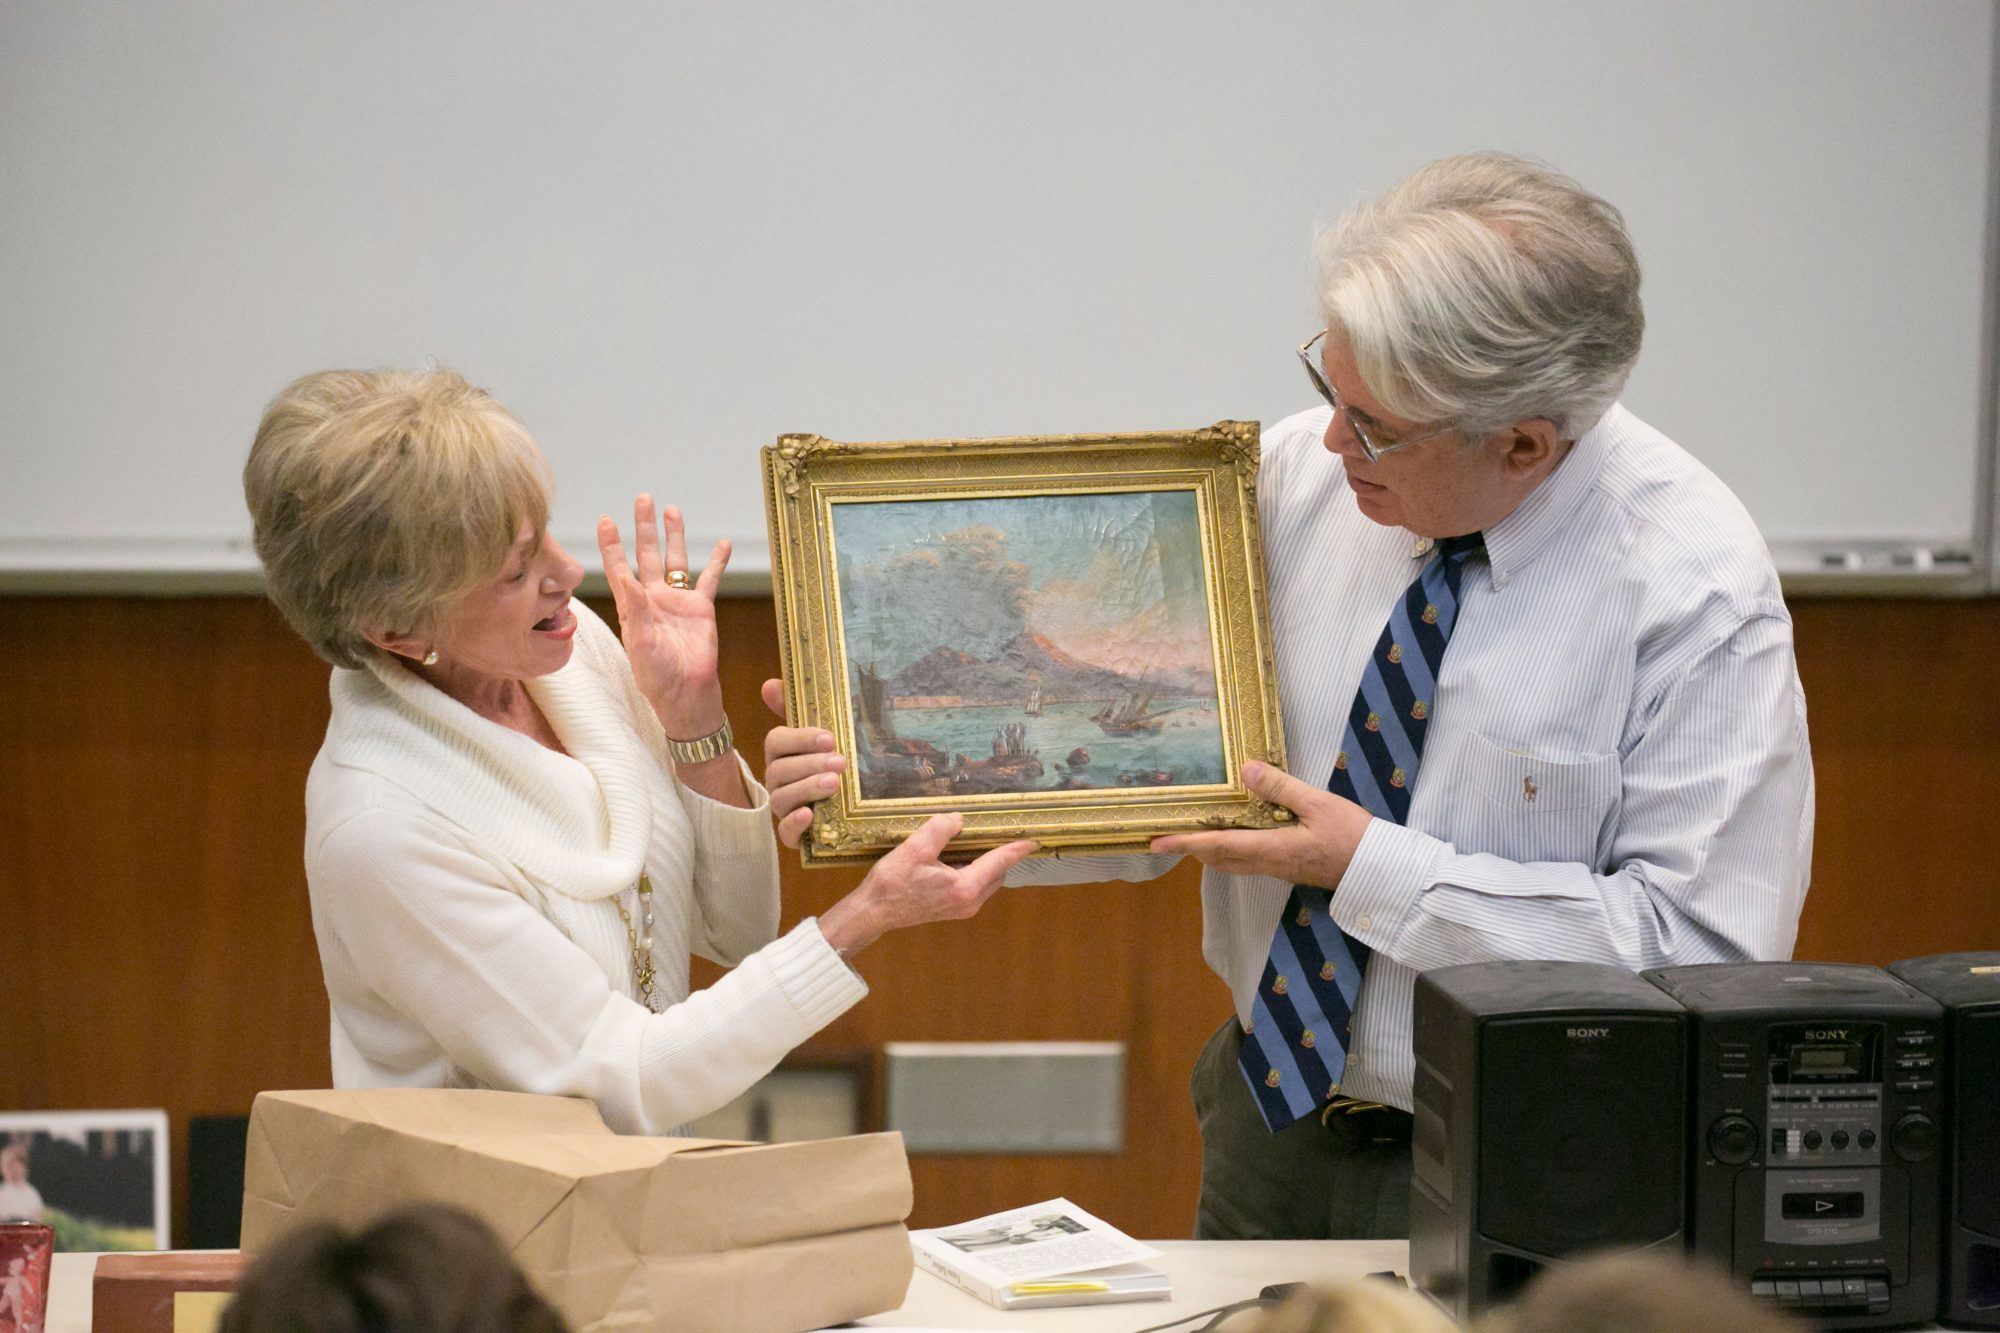 Dan Brooks Antiques Class Showing Art